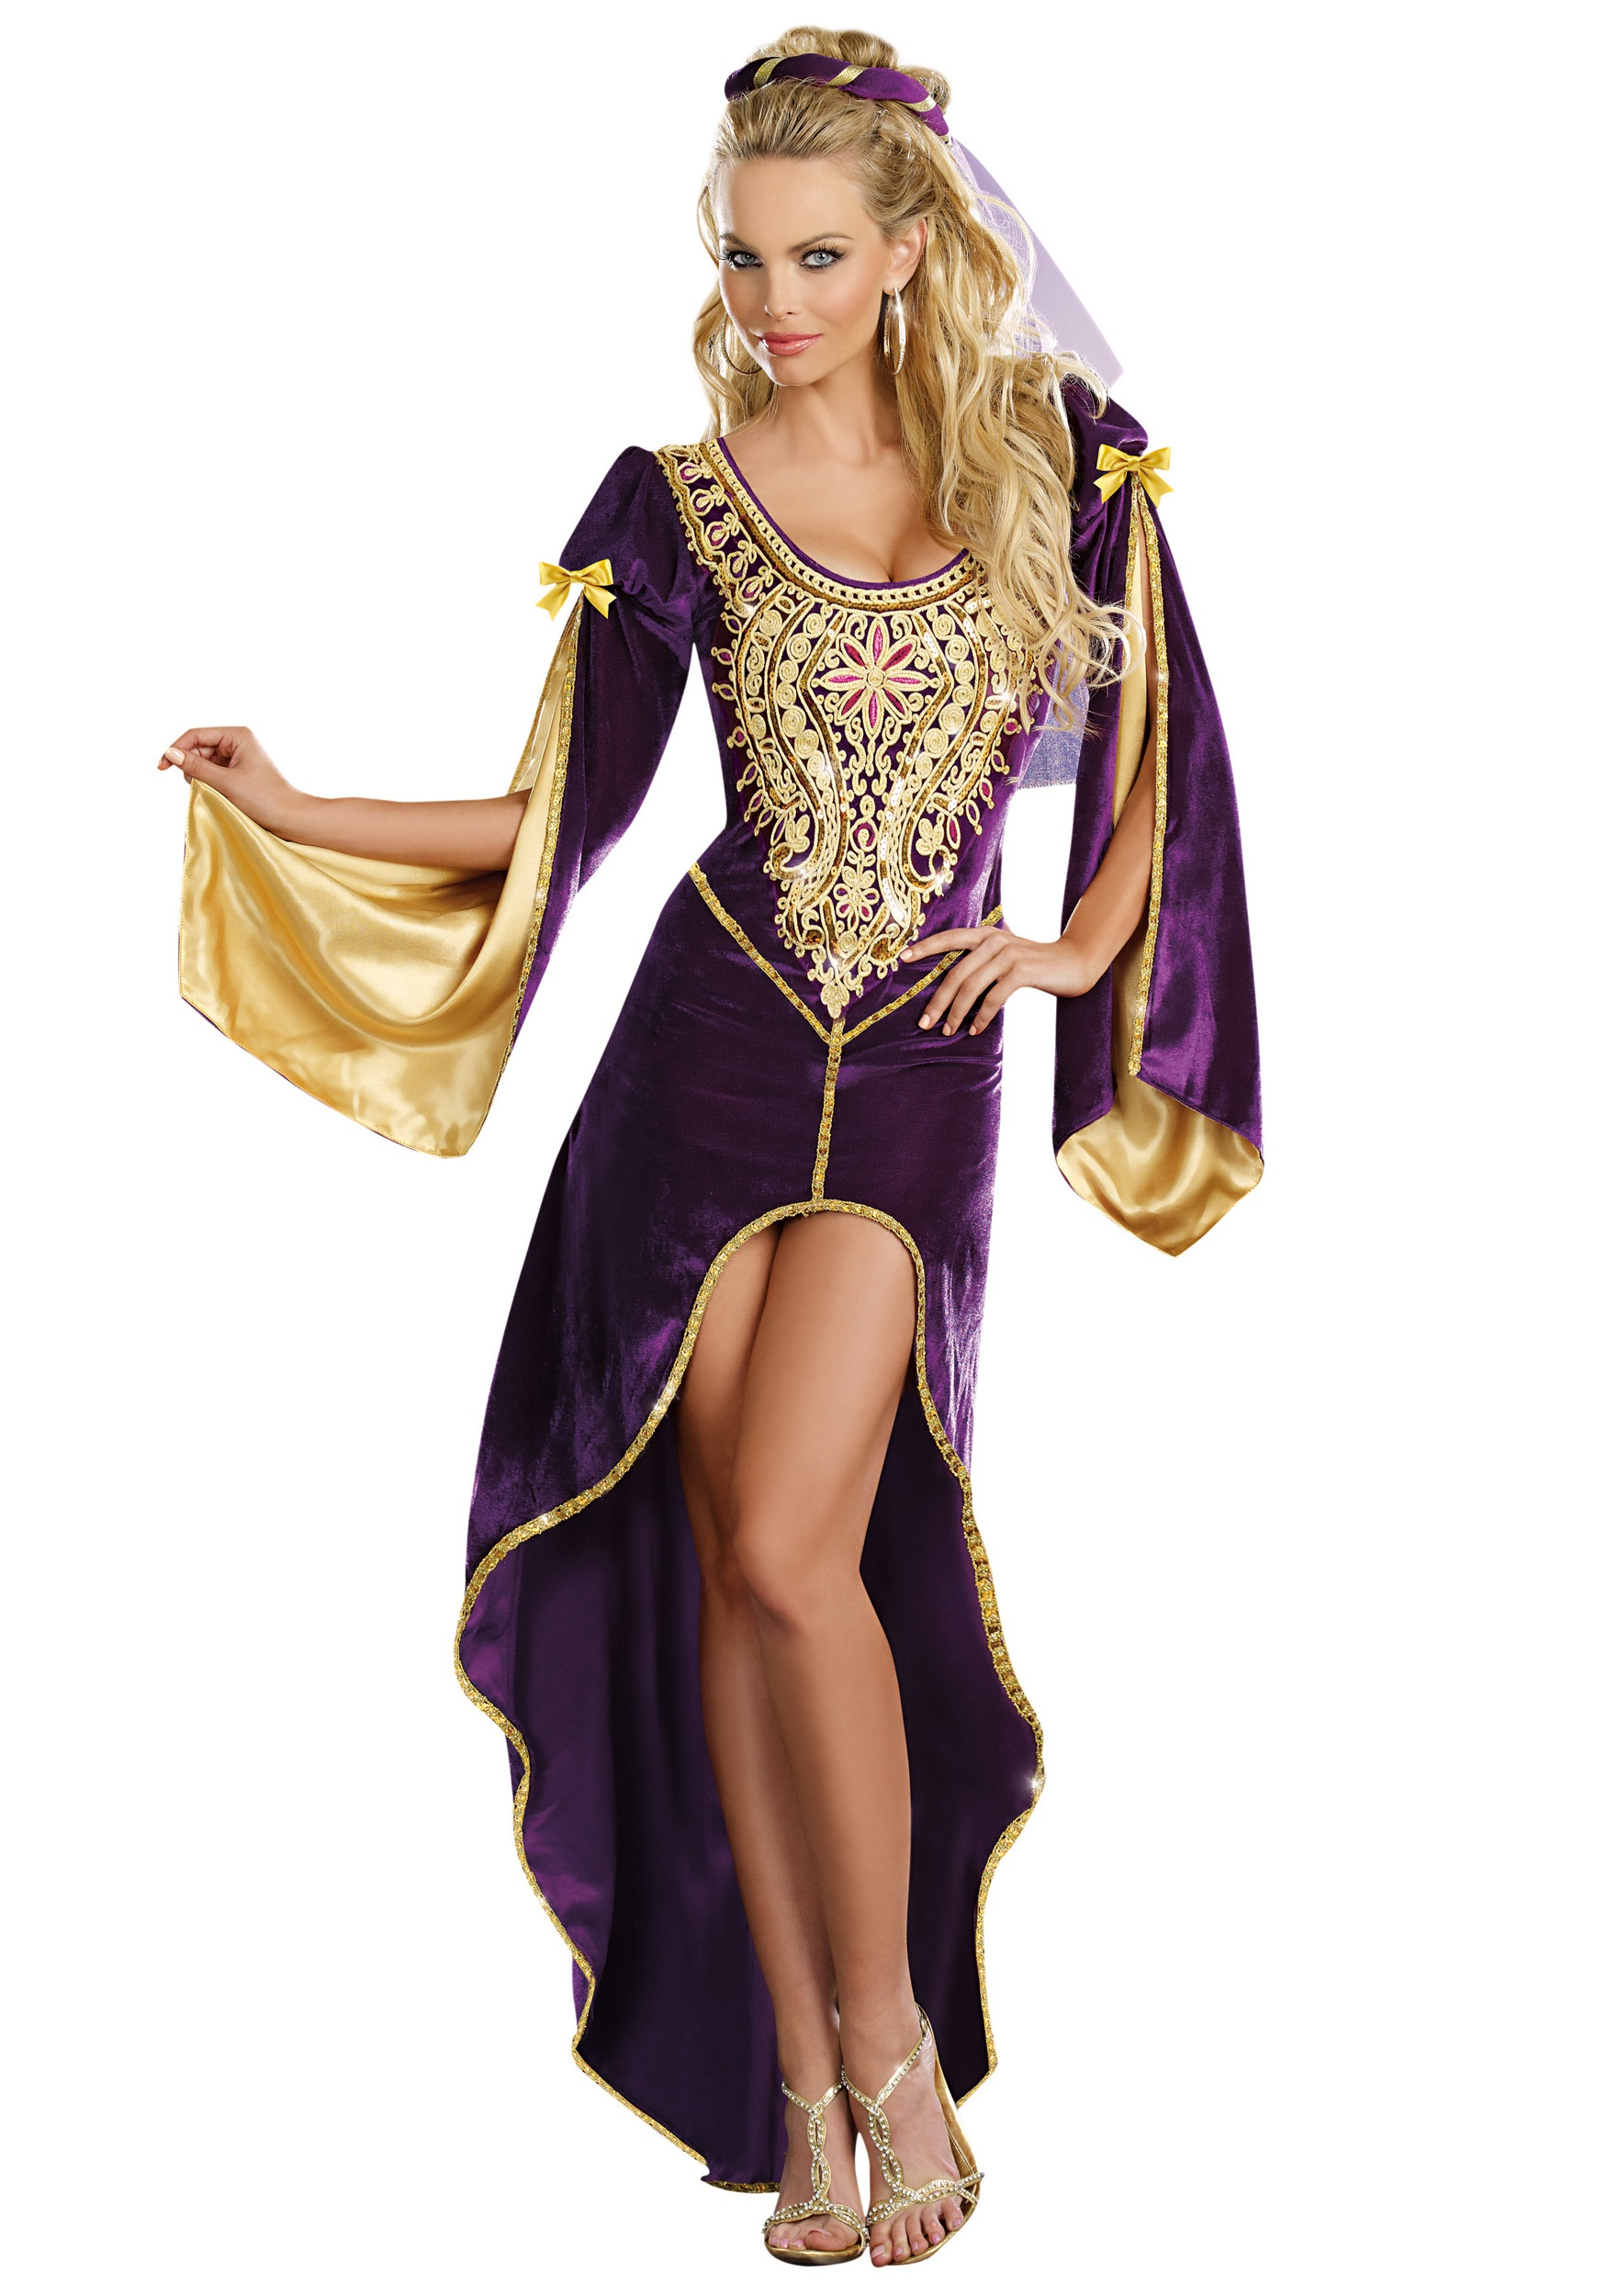 Queen of Thrones Renaissance Costume  sc 1 st  Halloween Costumes & Queen of Thrones Renaissance Costume - Halloween Costumes